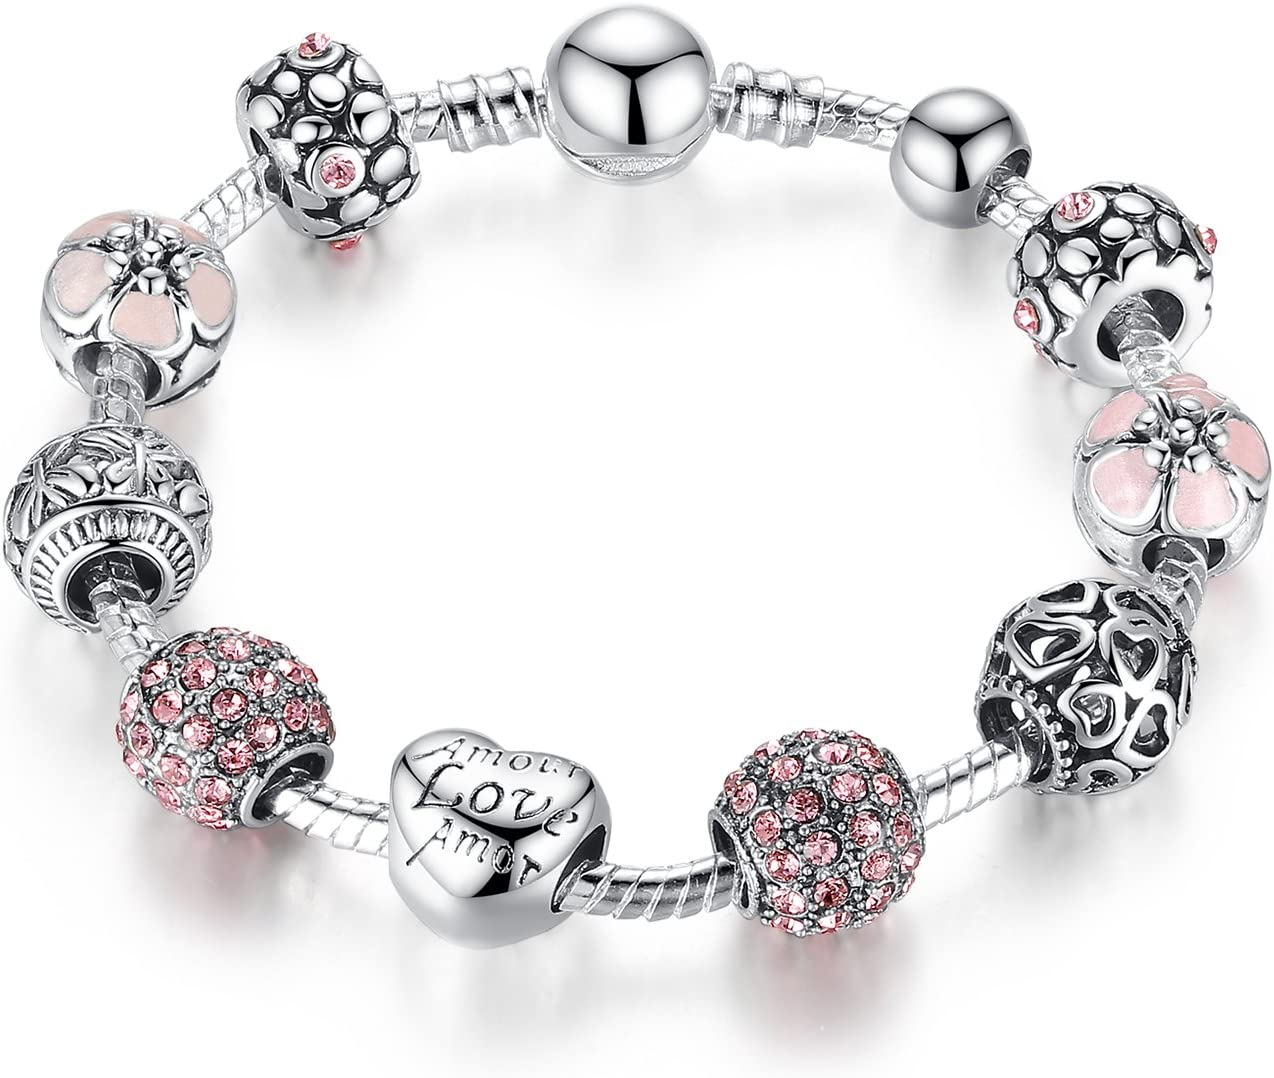 Pandora Element DIY Charm Beads Bracelet Silver Plated Love Fashion Gift